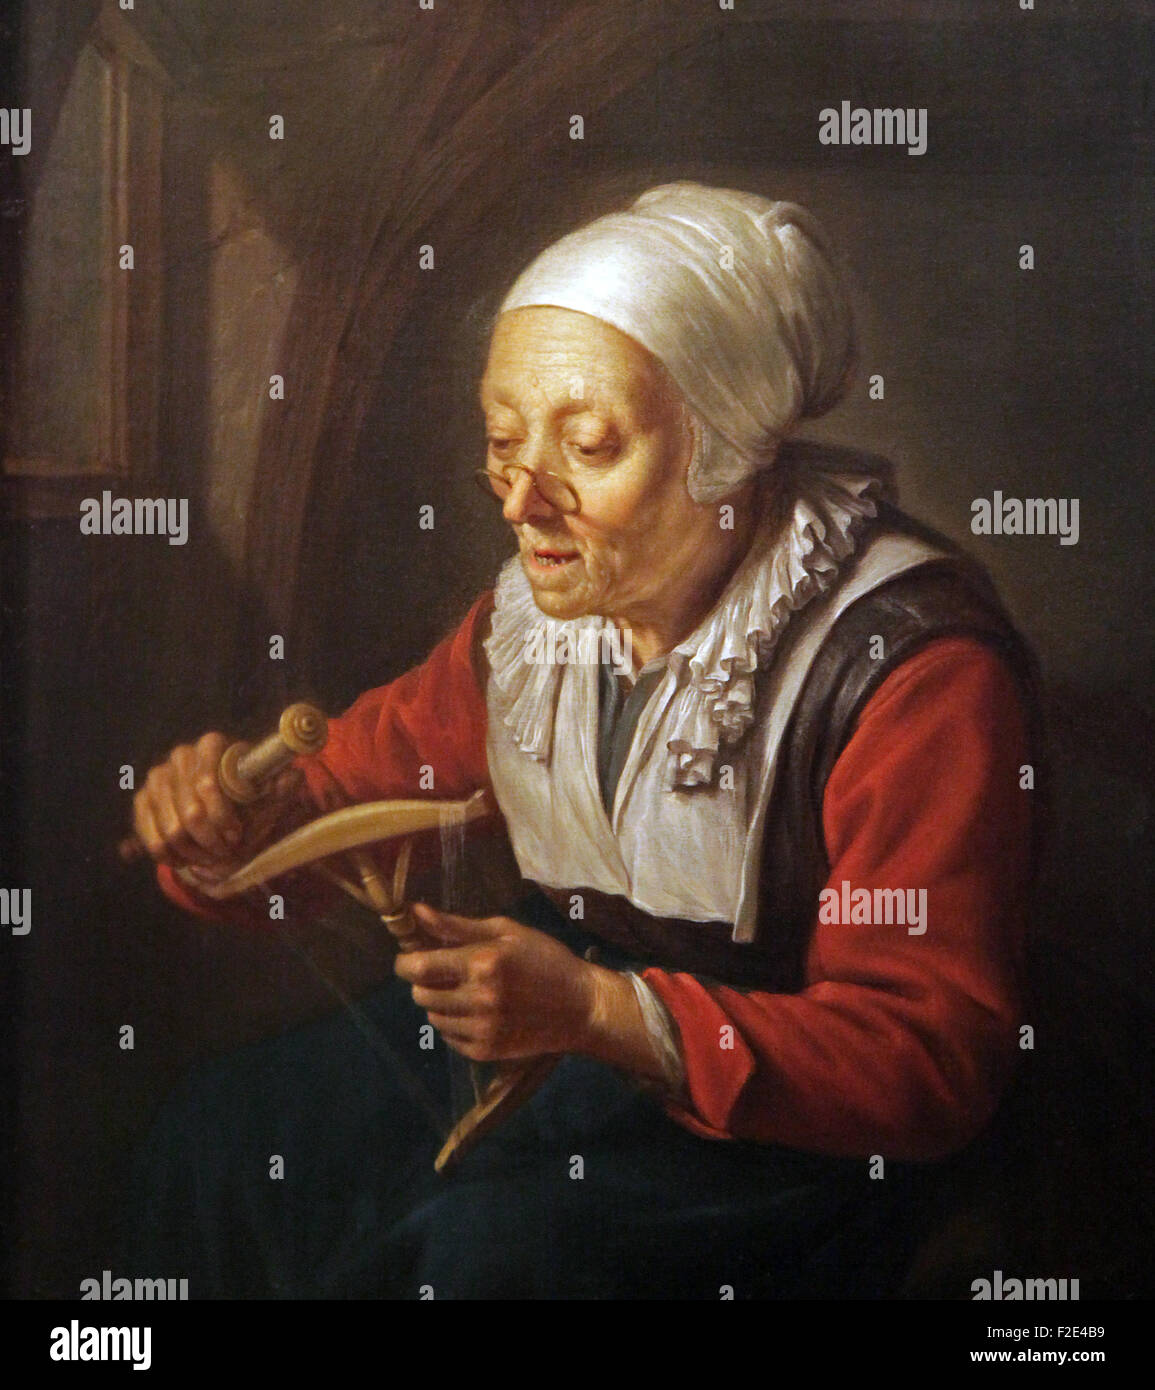 The Spinner the prayer of the spinner by Gerrit Gerard Dou 1613-1675 - Stock Image